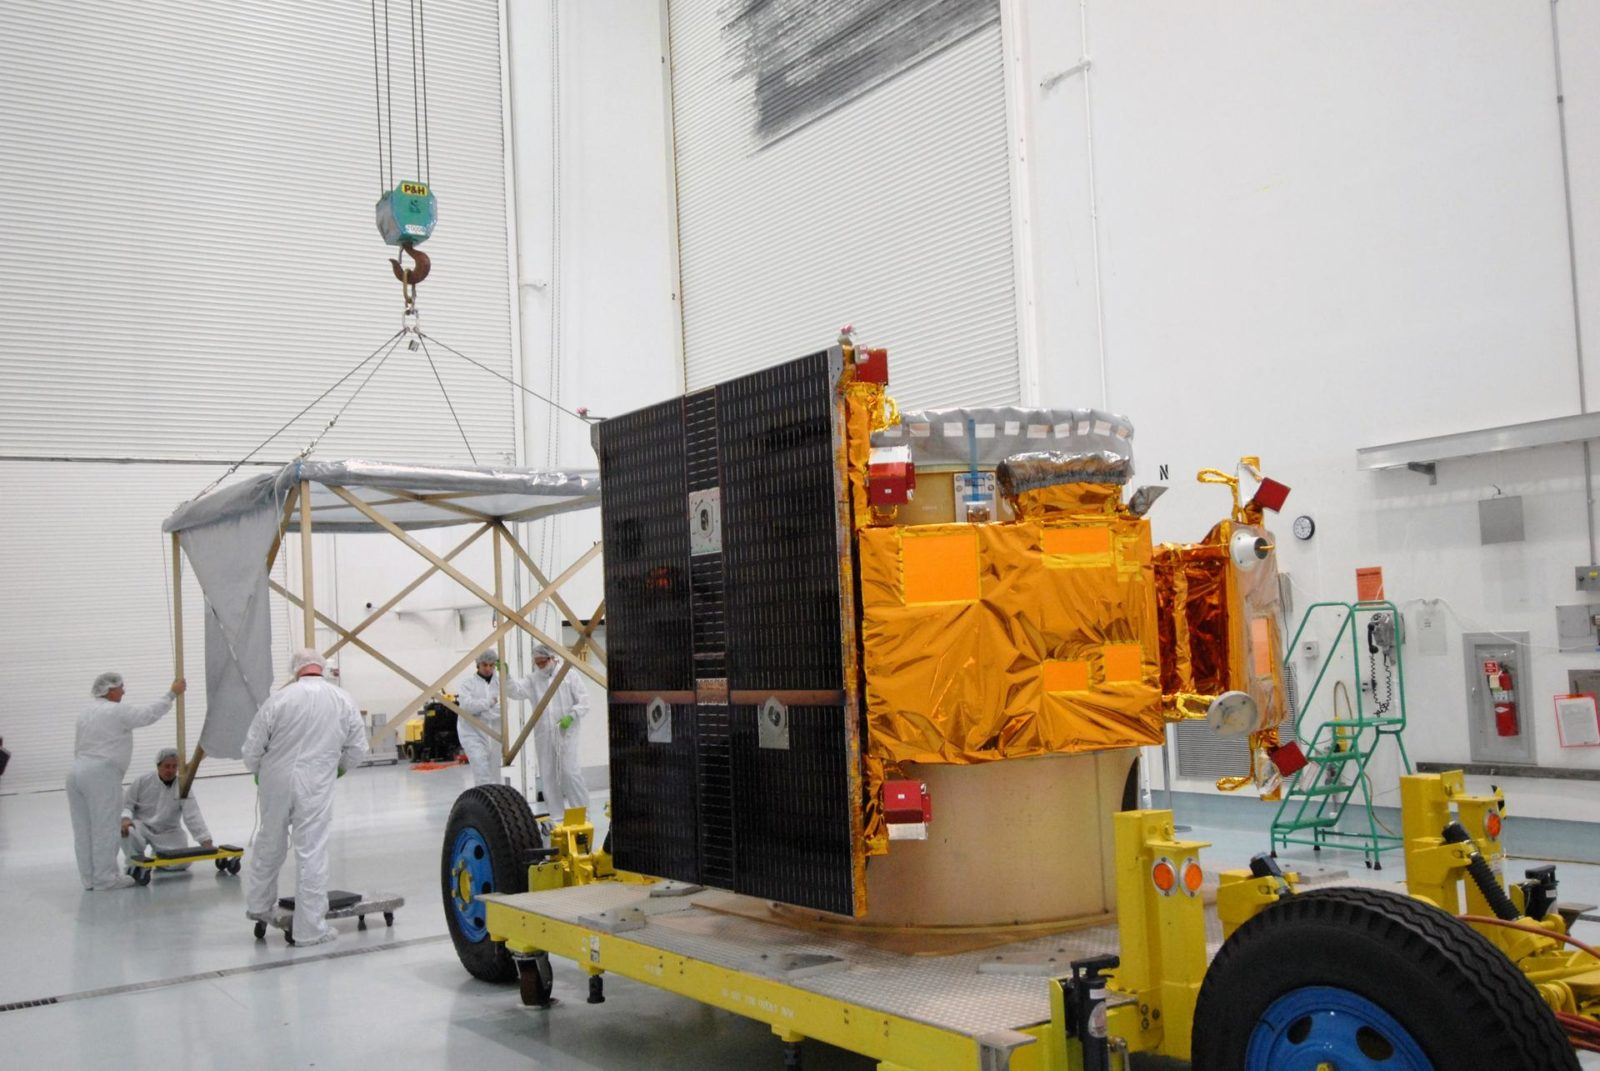 nasa commercial lunar payload services - HD1600×1071